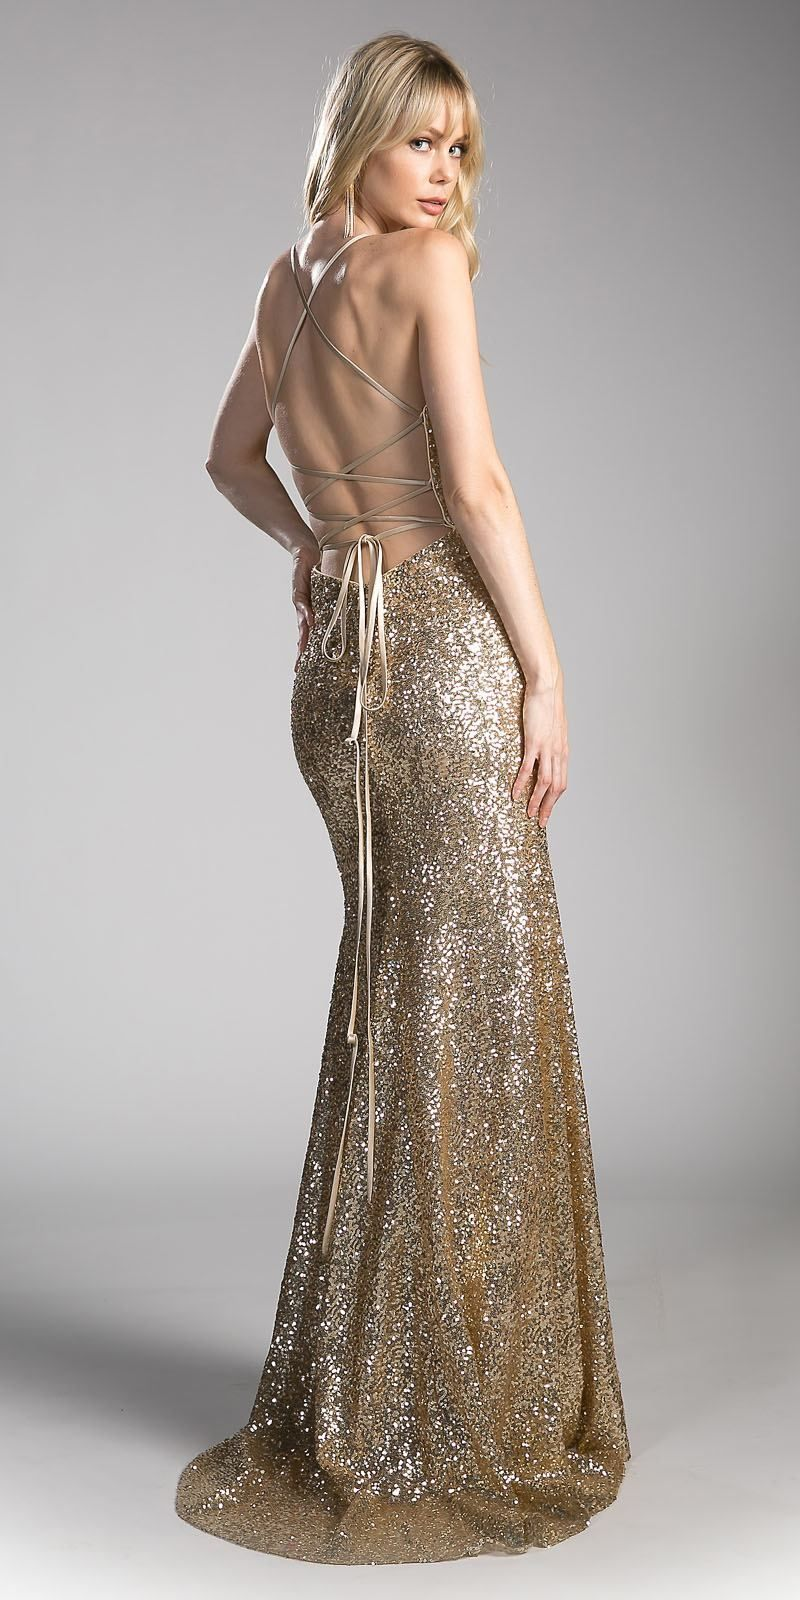 ed6820f5118 Mermaid silhouette floor length sequins dress by Cinderella Divine CJ256 in  gold. Full length dress with plunging v-shape neckline and spaghetti straps  ...